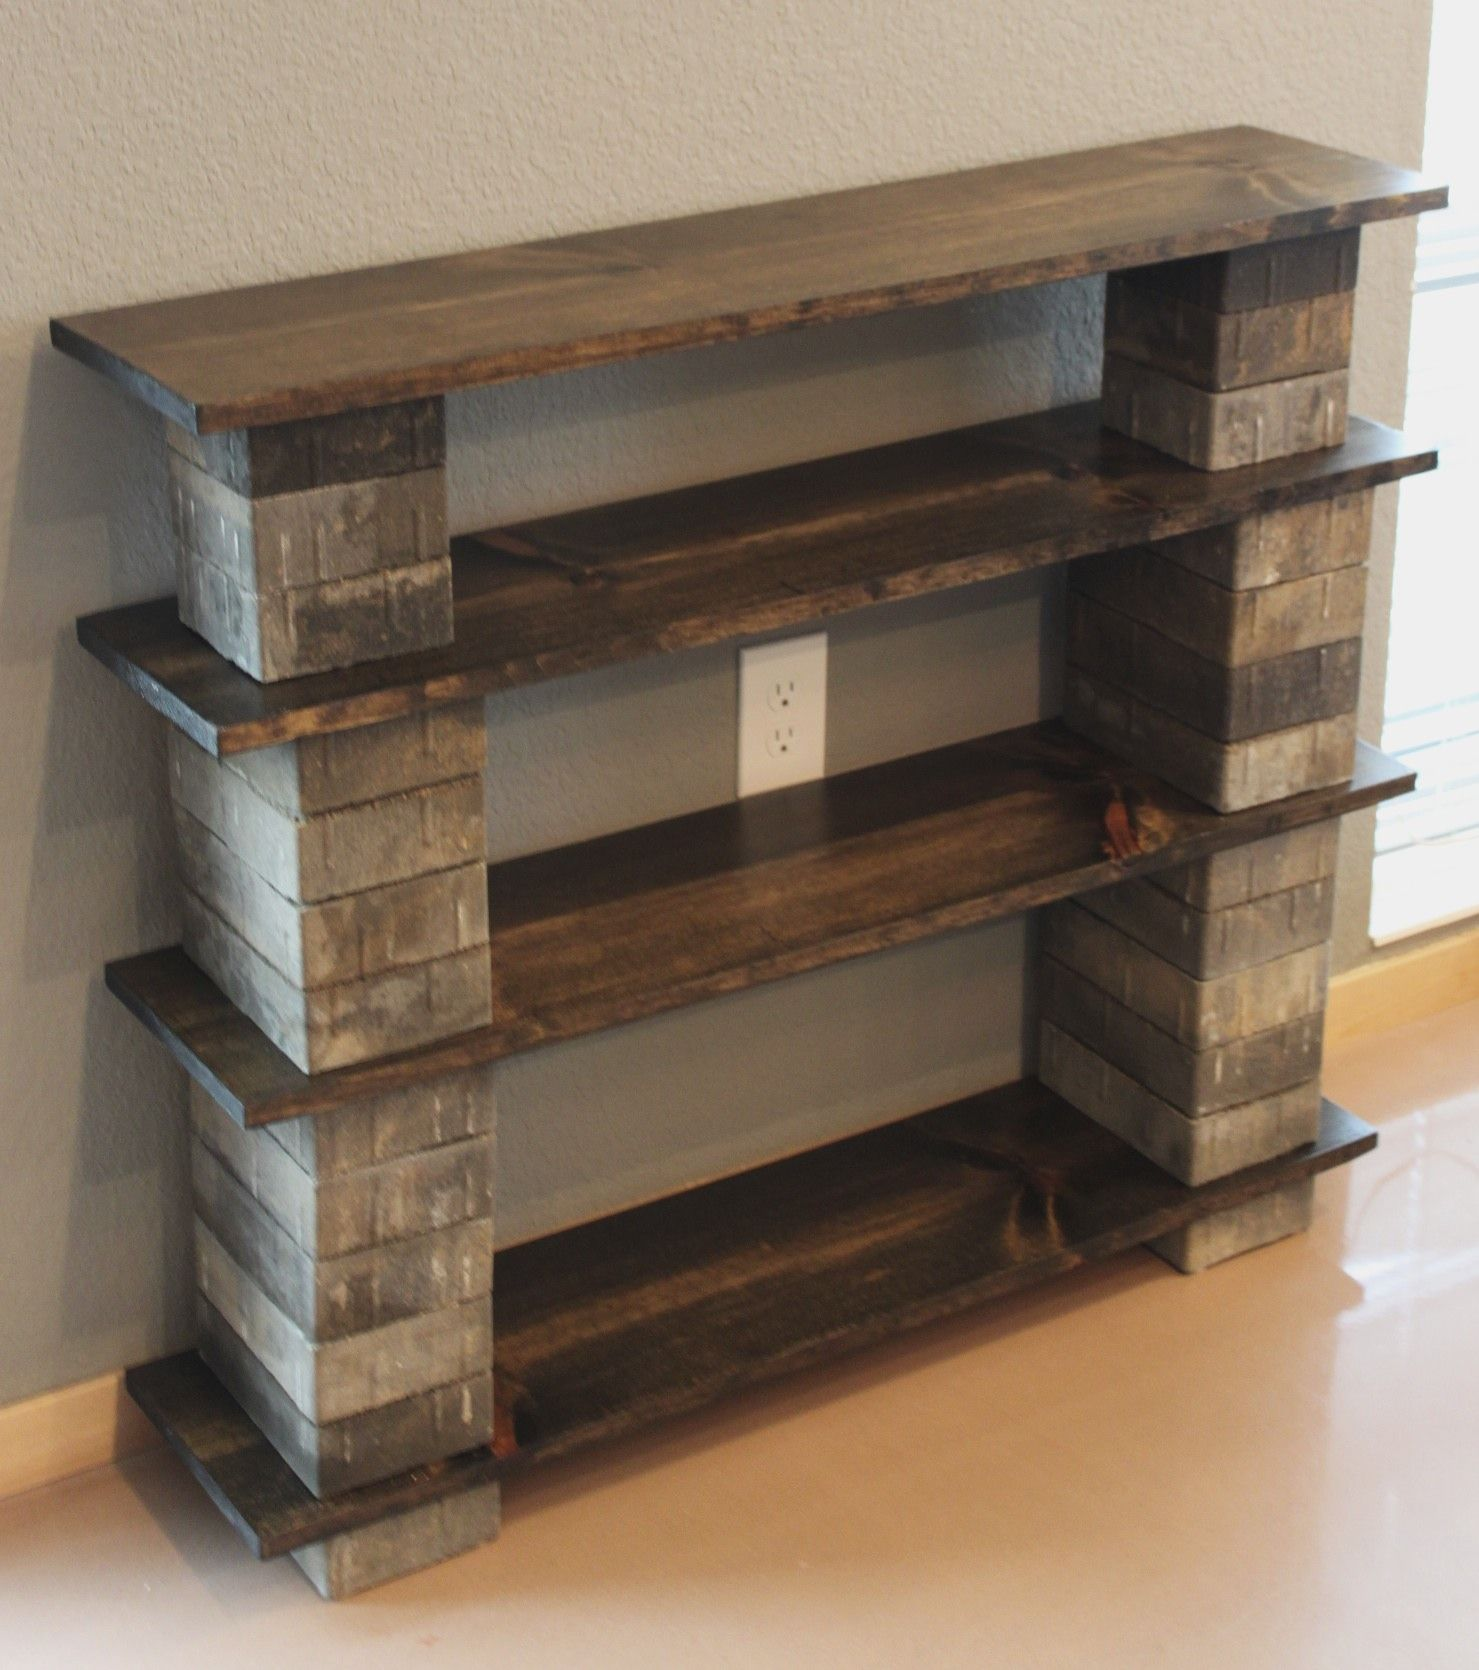 diy concrete block bookshelf | diy concrete, concrete and choices